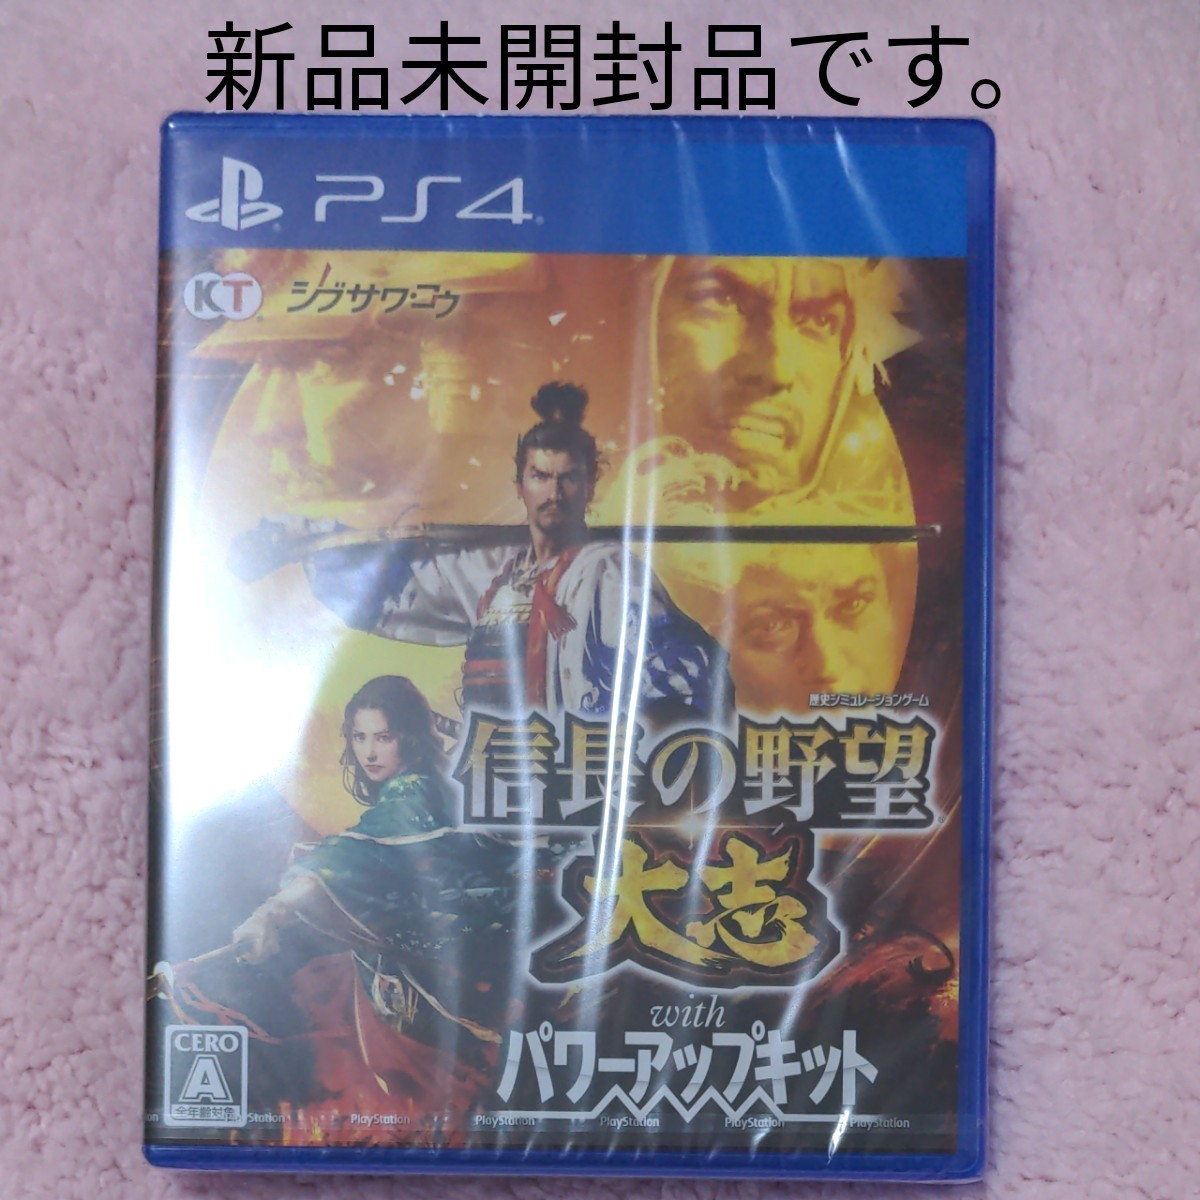 【PS4】 信長の野望・大志 with パワーアップキット PS4 PS4ソフト